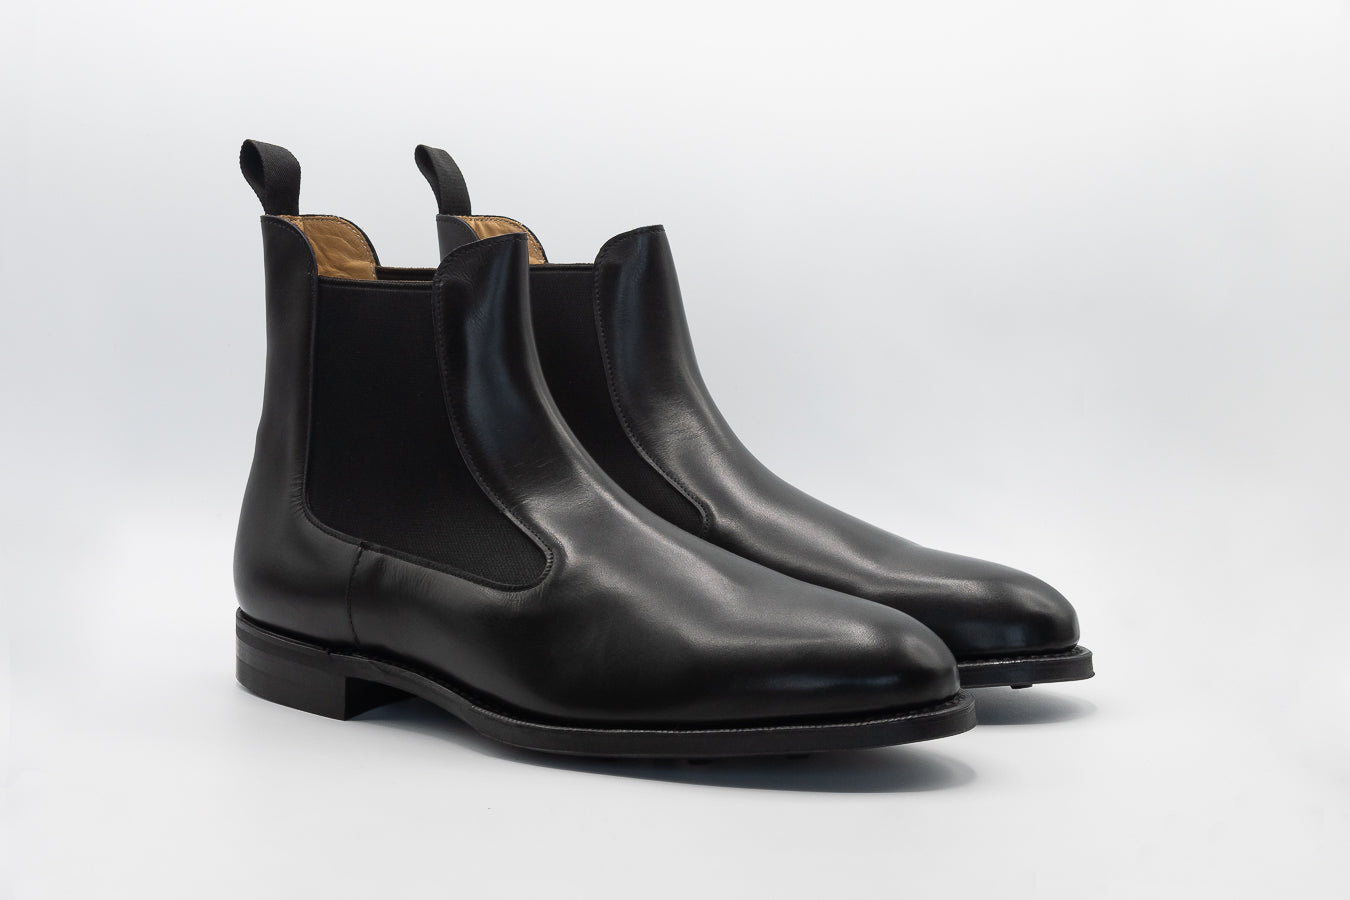 Chelsea Boot // Boxcalf // Schwarz // Dainite Sohle